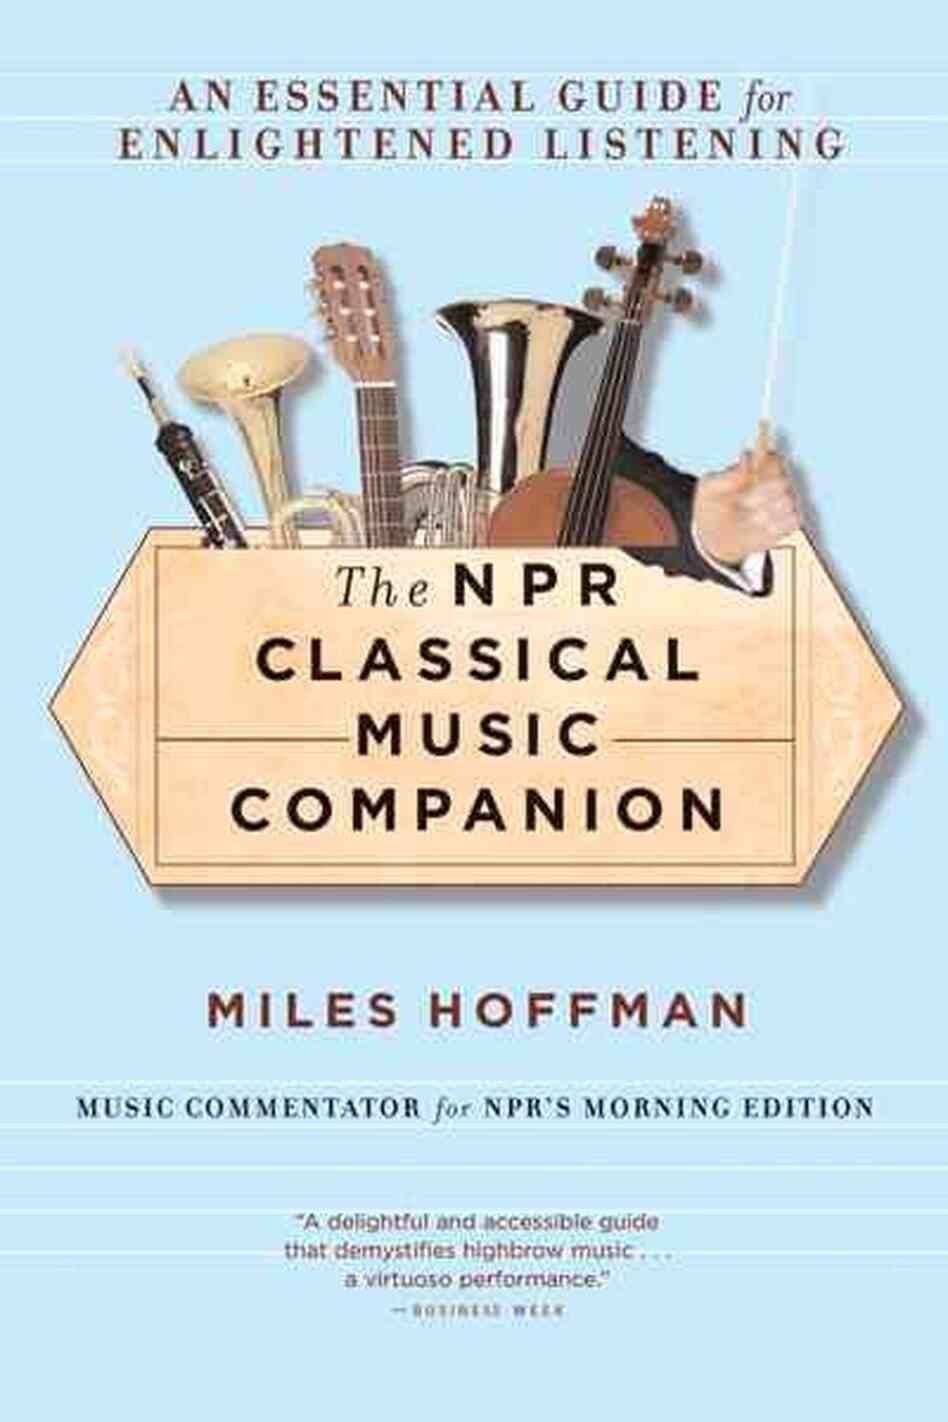 The Npr Classical Music Companion